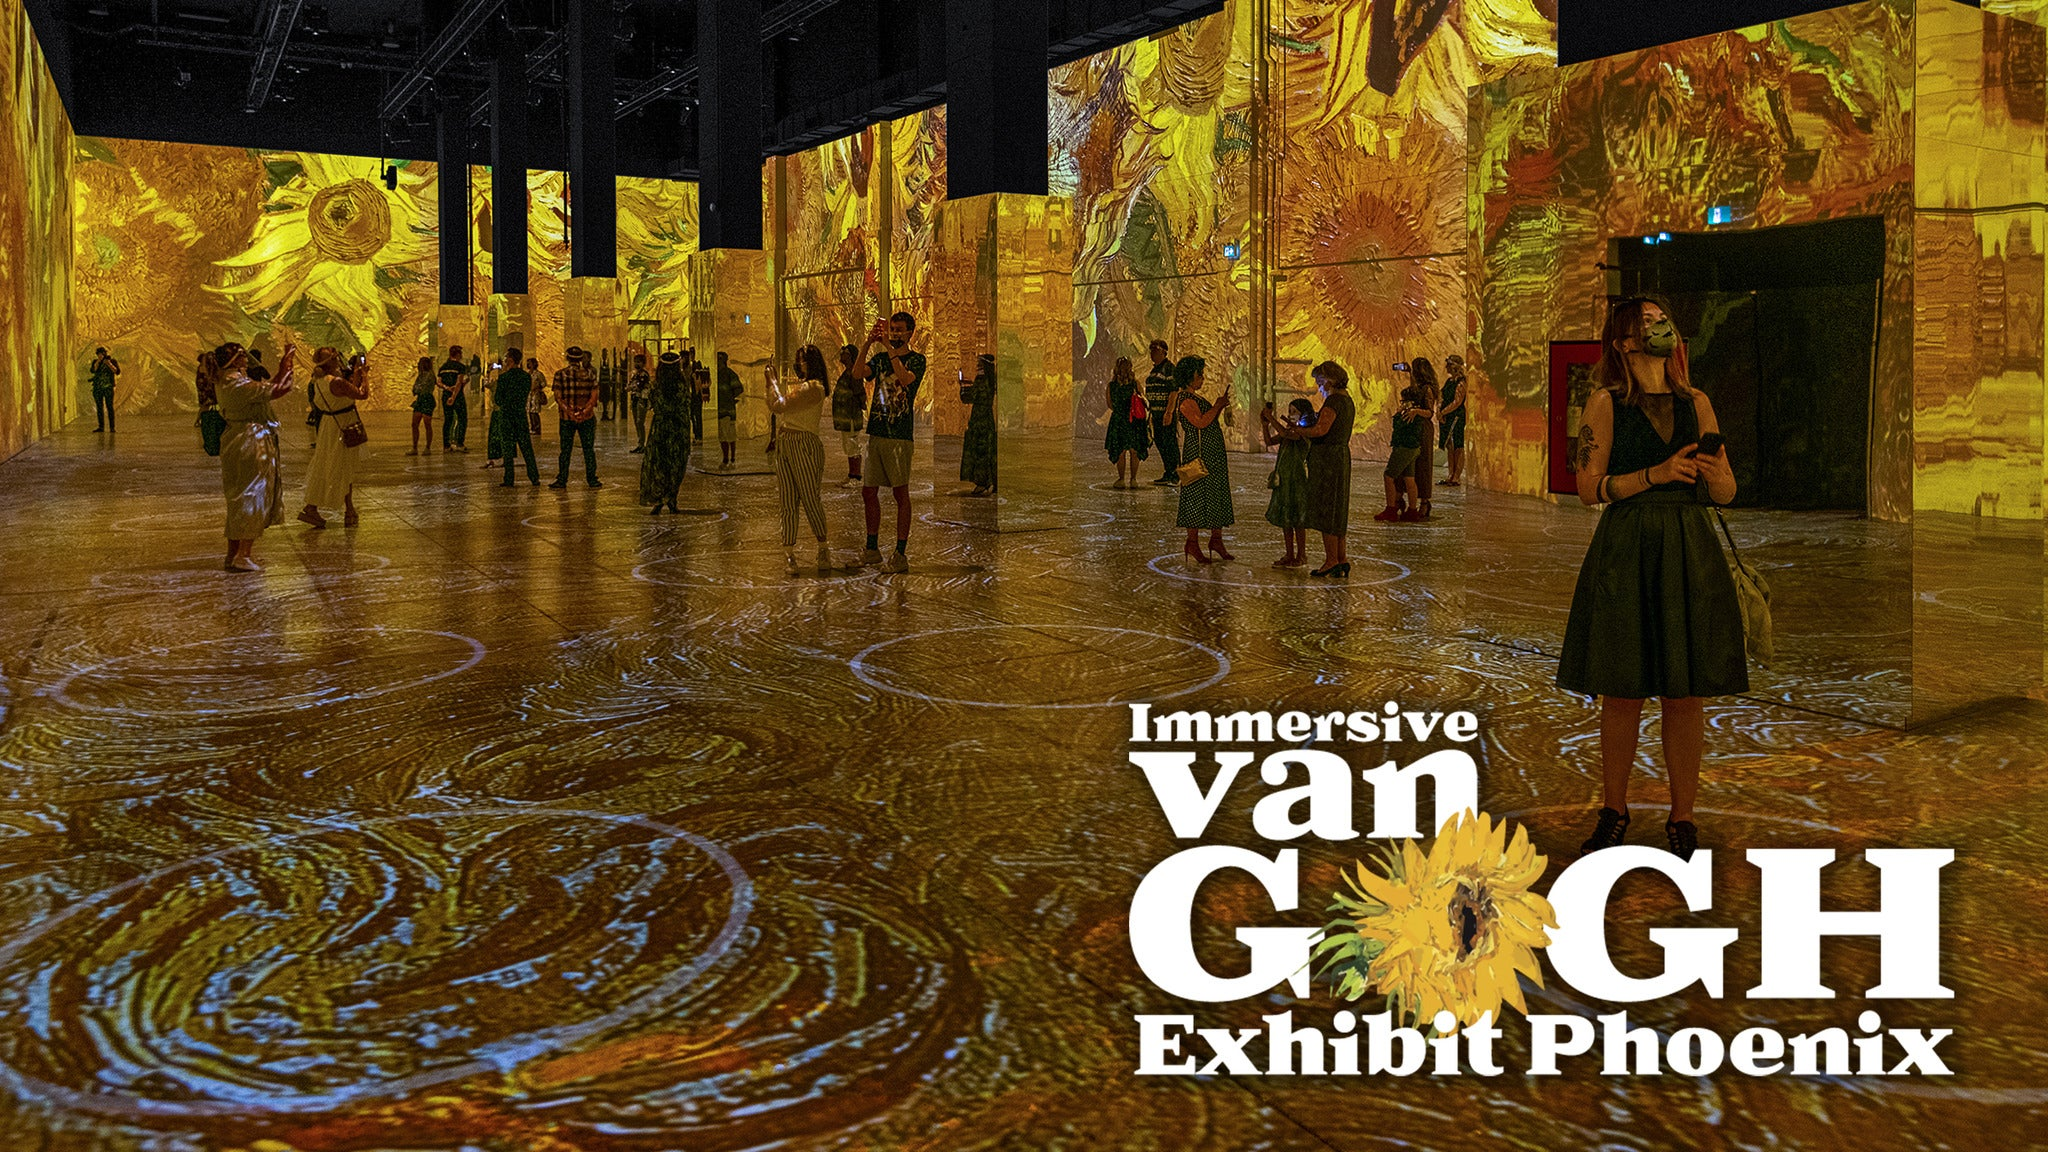 Immersive Van Gogh (Peak) at Secret Location - Phoenix - Phoenix, AZ 85004